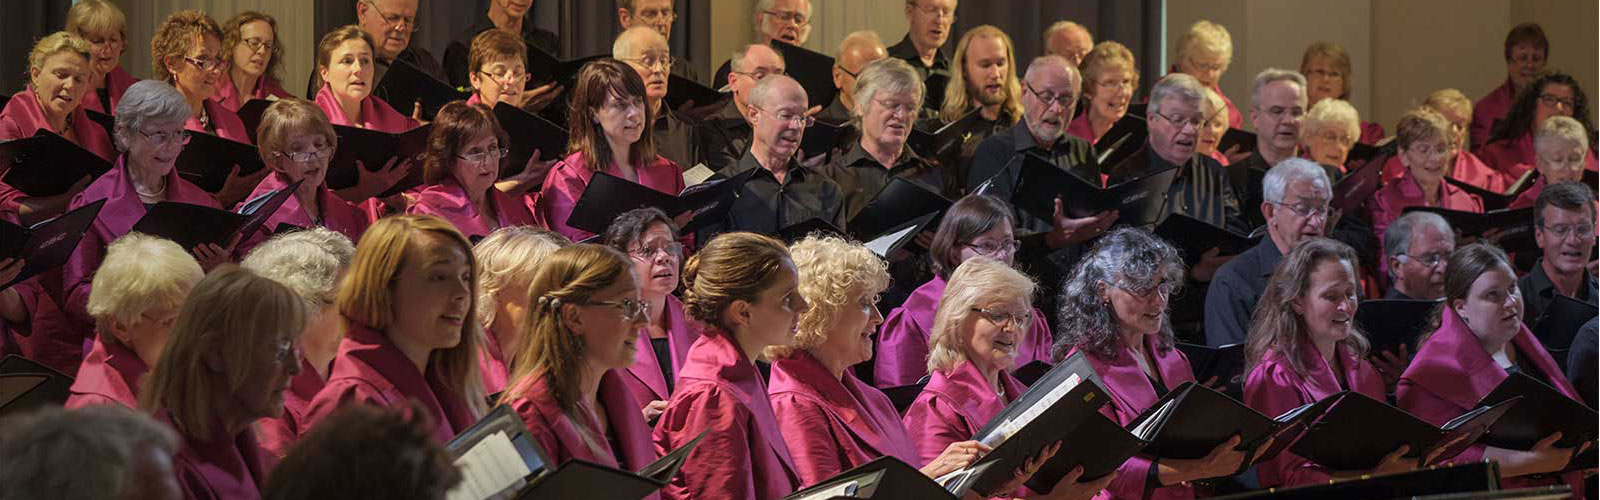 Cheltenham Bach Choir perform choral concerts at Cheltenham Town Hall